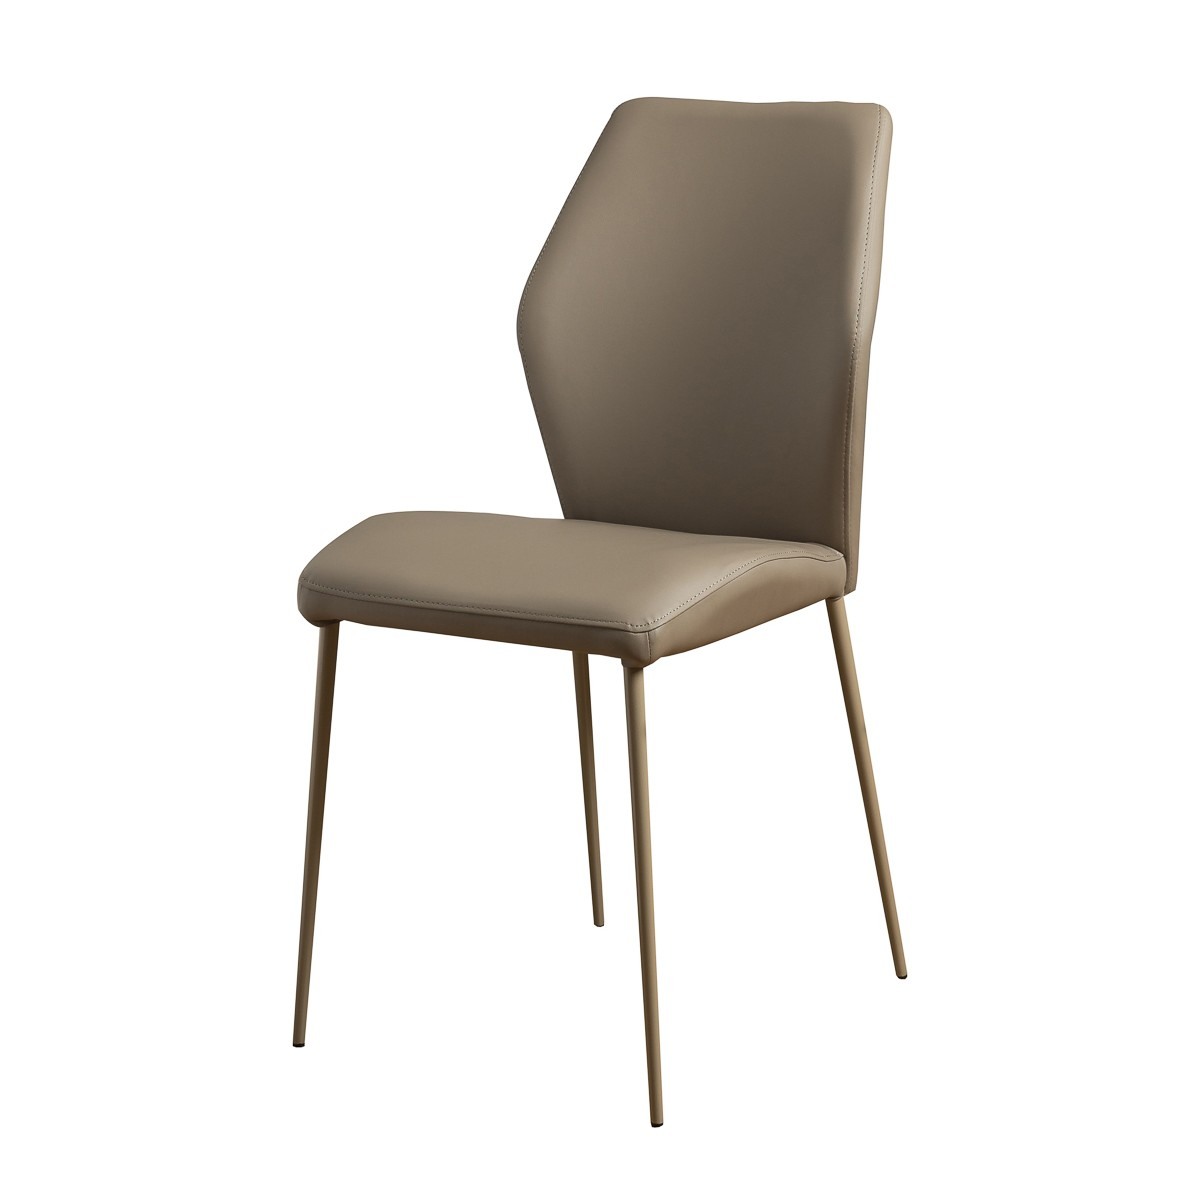 Modernity  - Taupe Chair